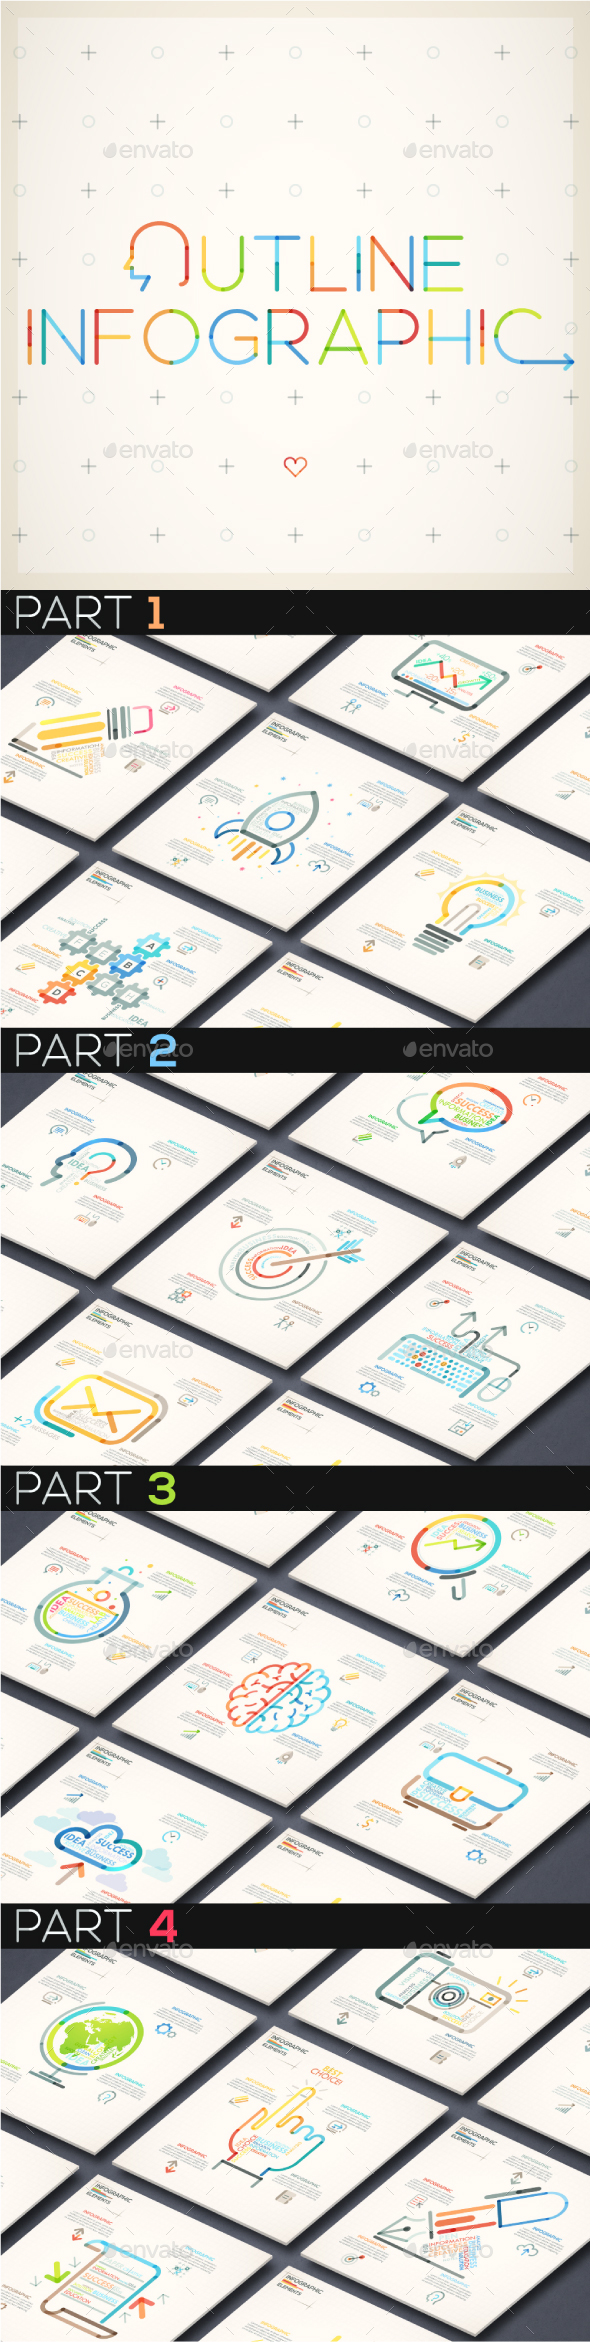 Outline Infographic Bundle